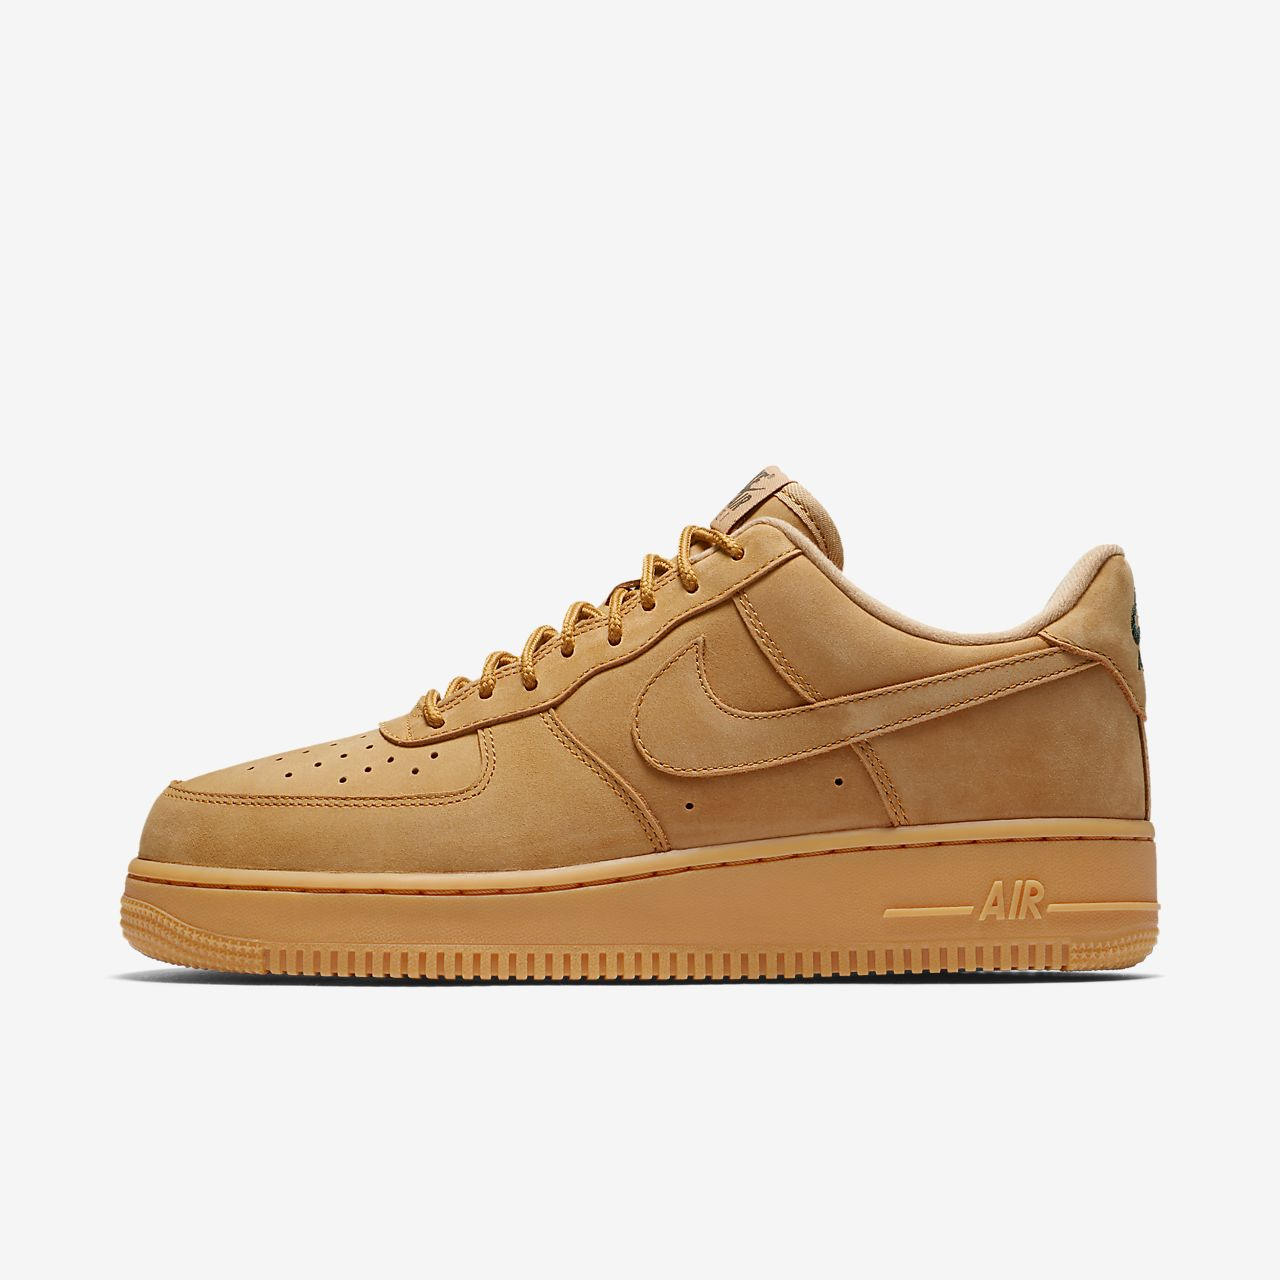 newest 92e16 ce9a8 ... Chaussure Nike Air Force 1 07 WB pour Homme